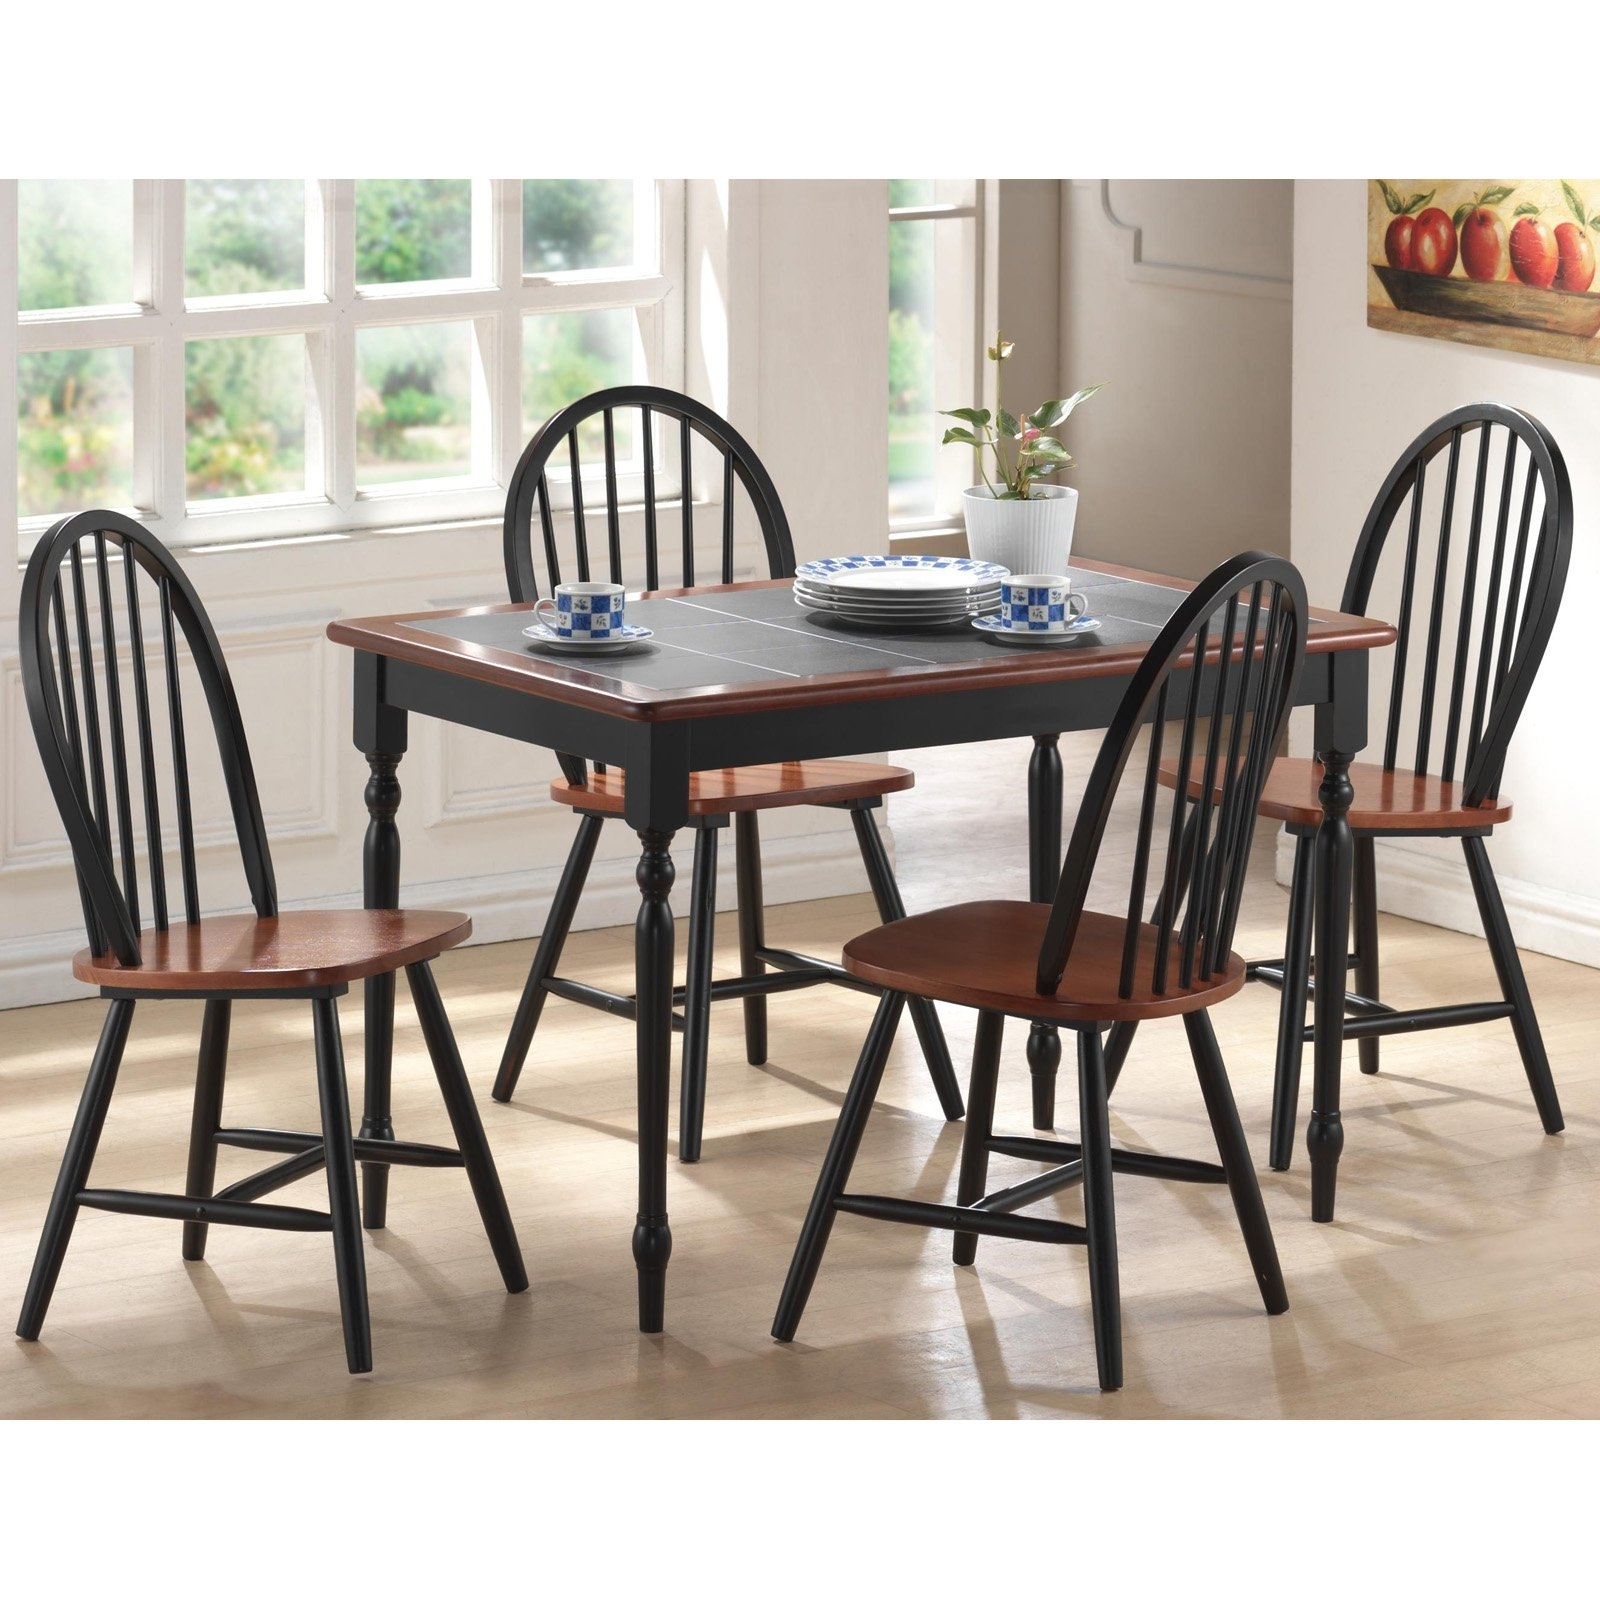 Farmhouse Kitchen Table And Chairs Sets